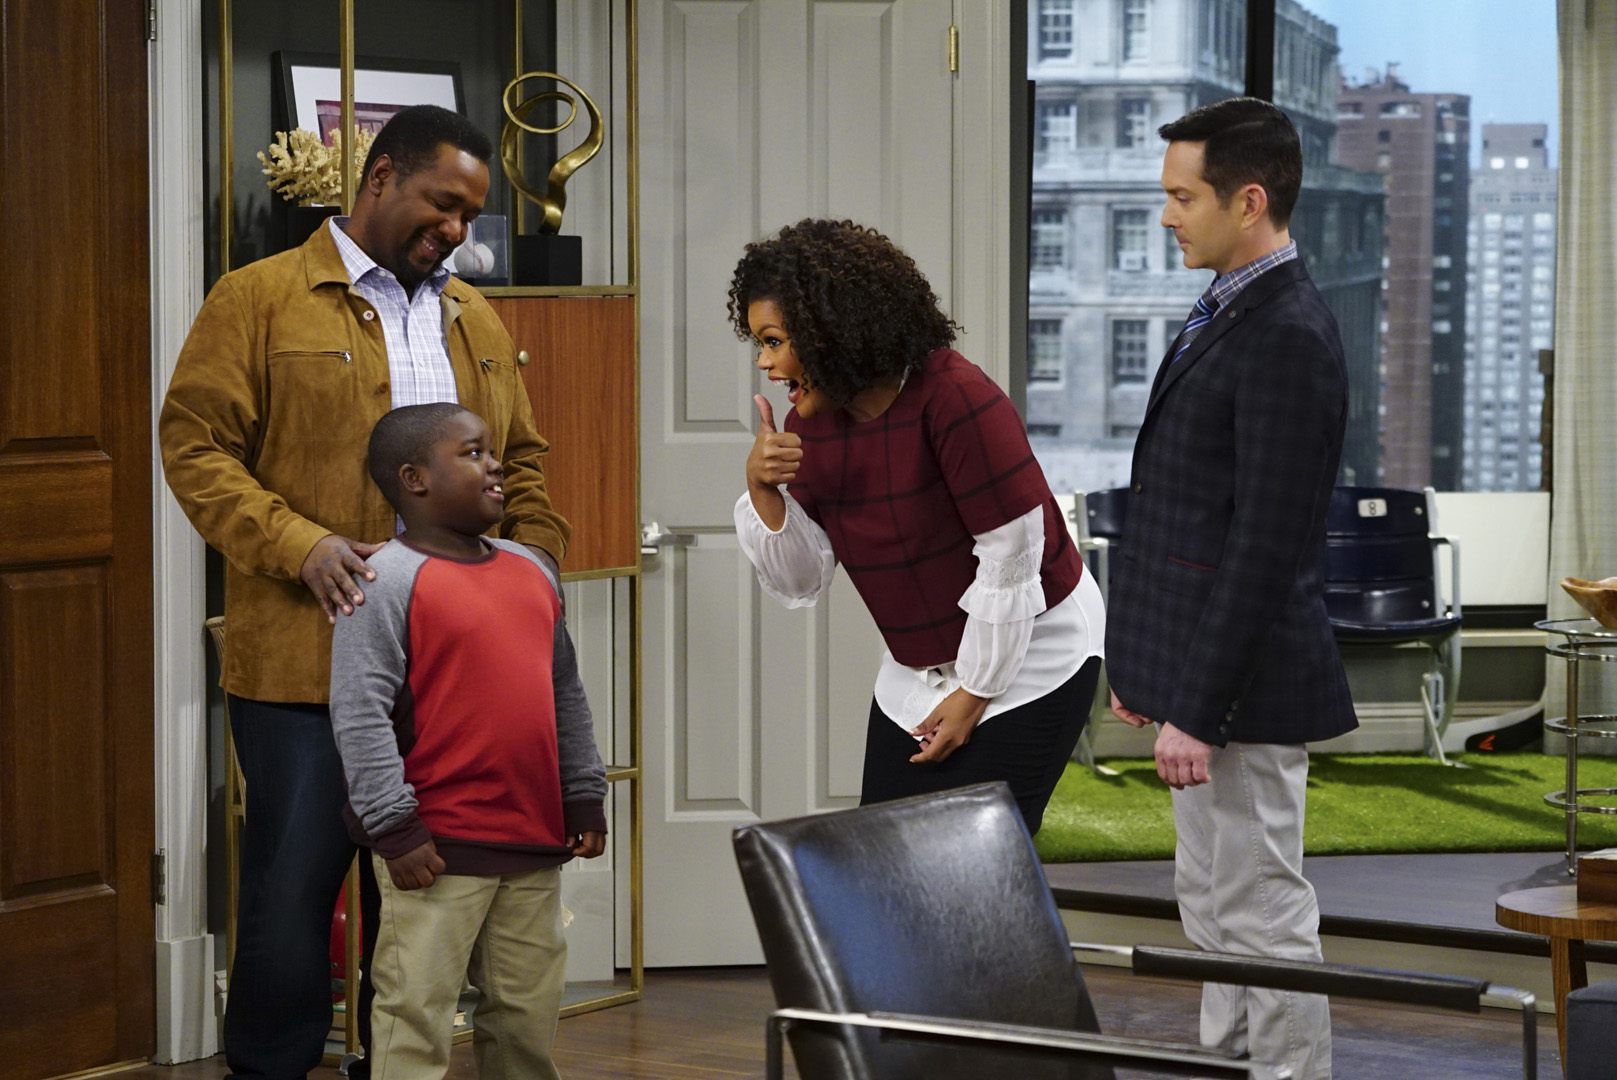 Dani gives Teddy's young son a thumbs up when they visit Oscar and Felix's apartment.